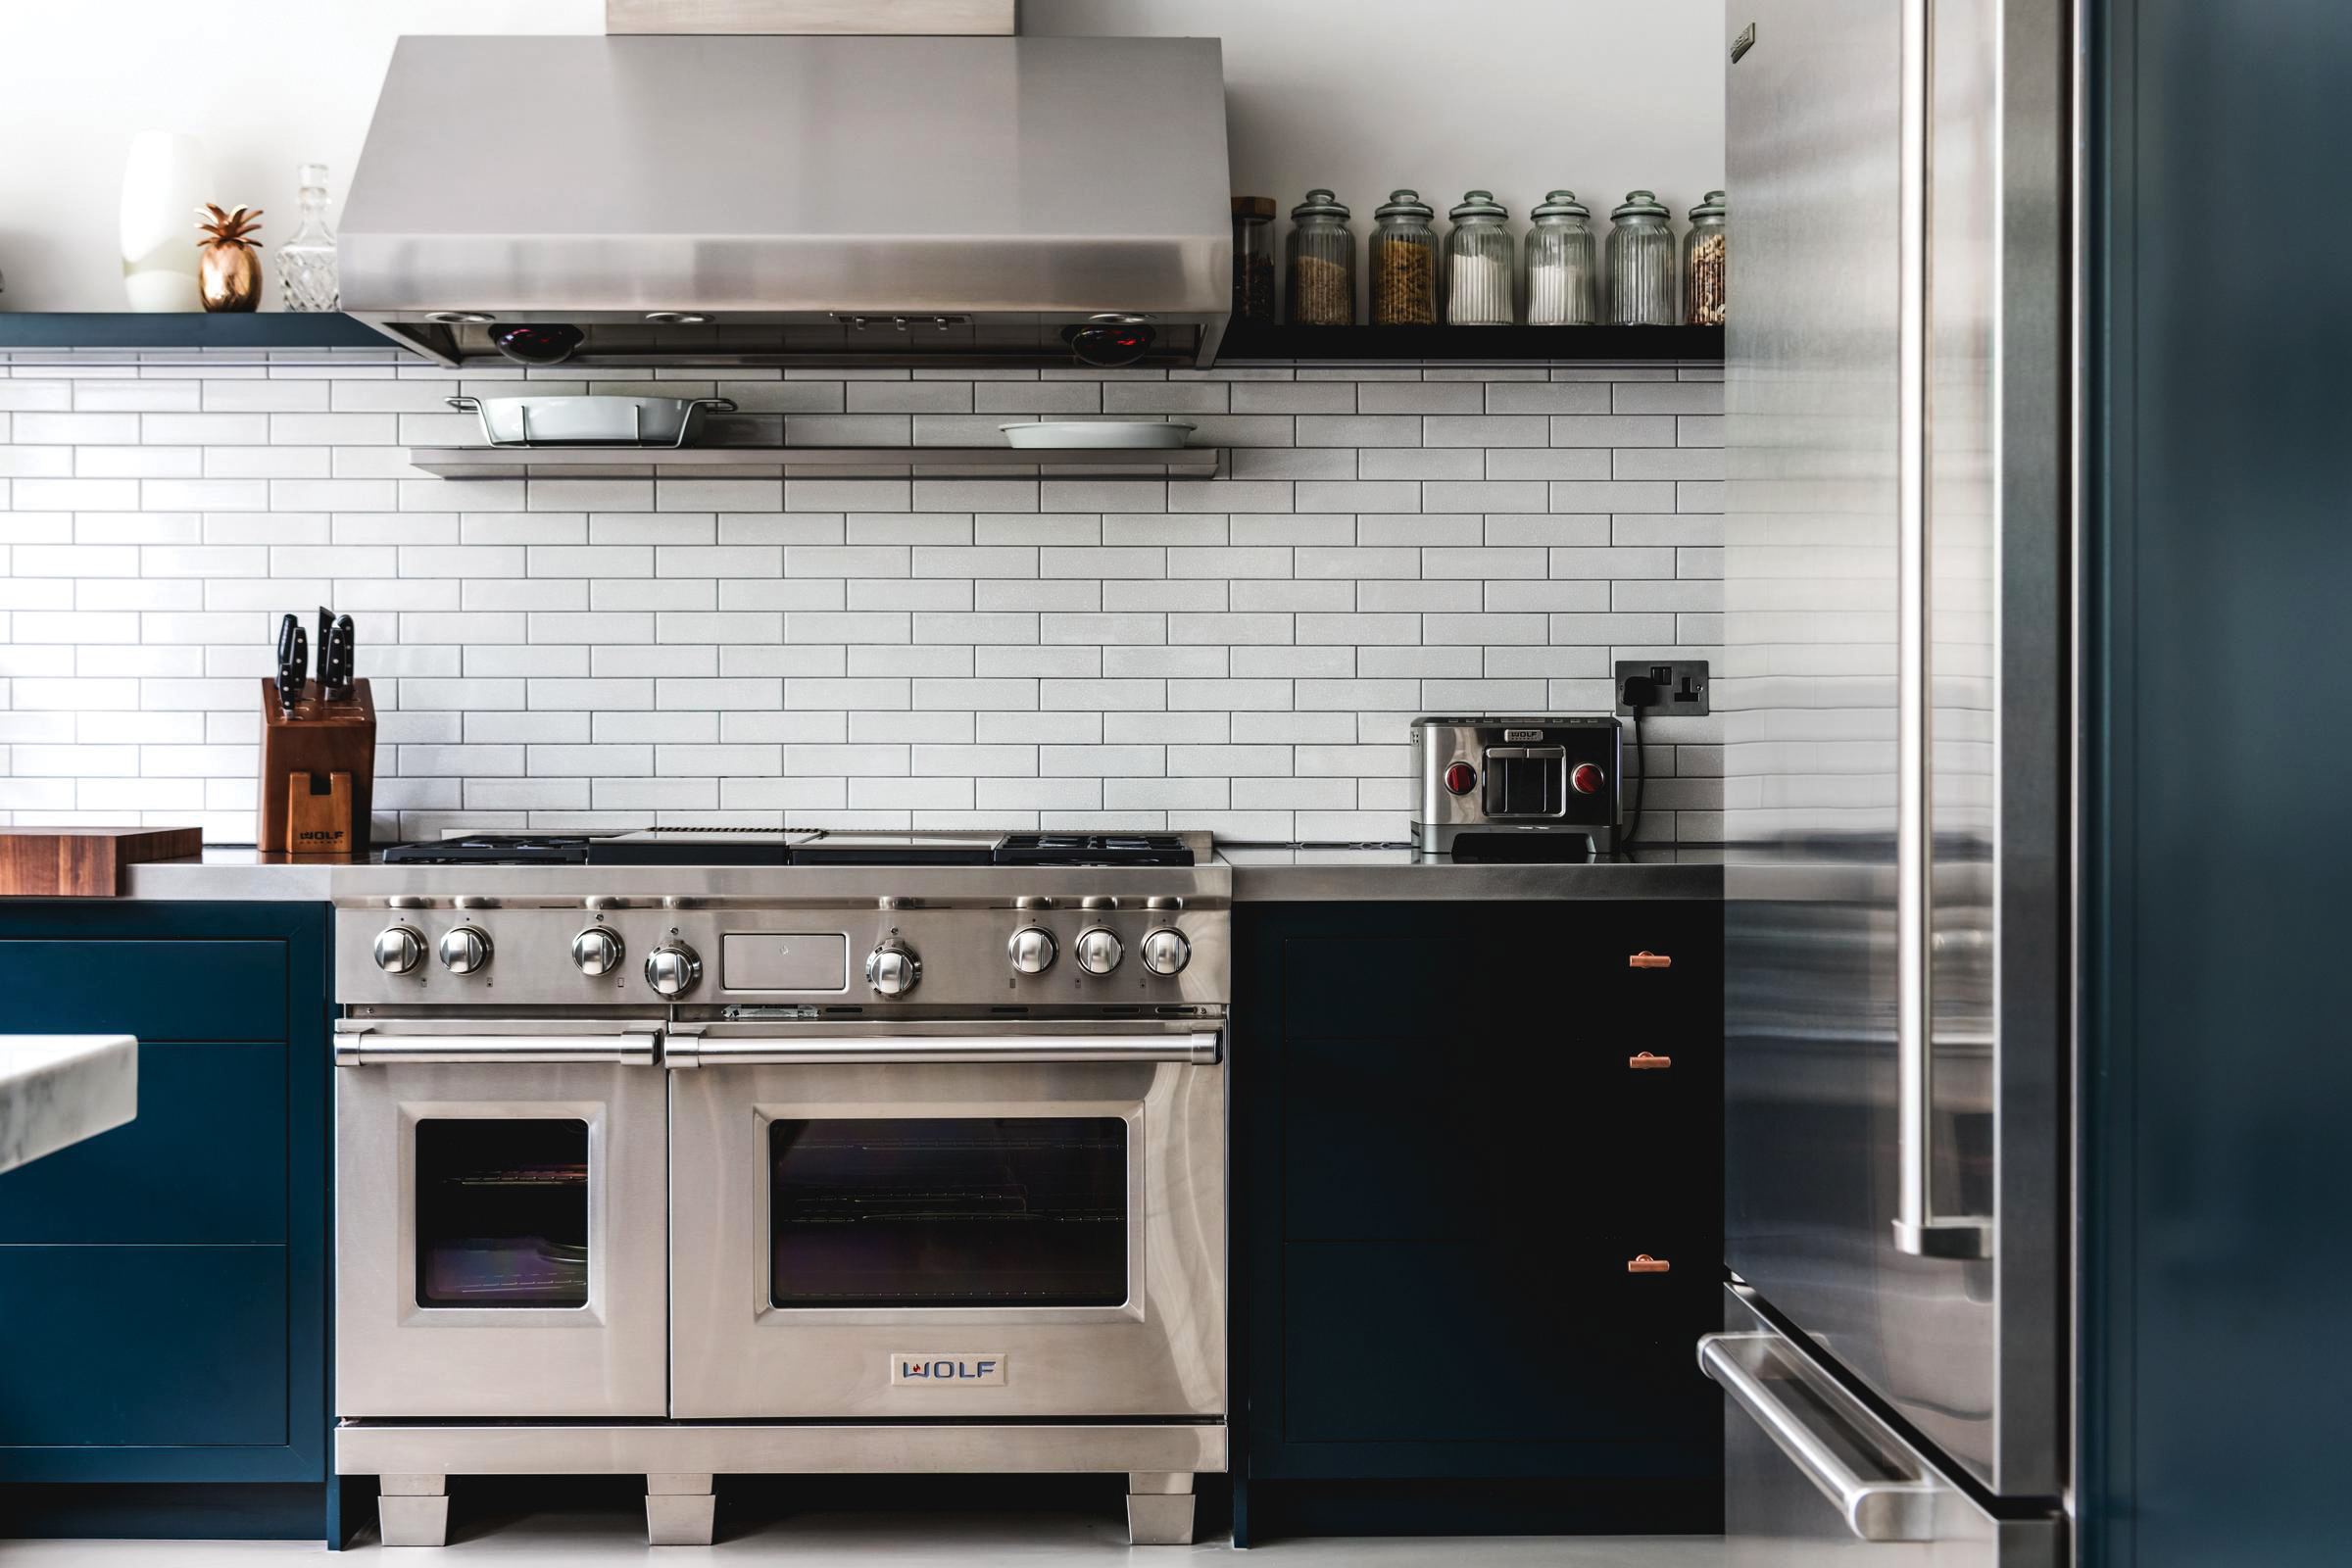 3 - DUAL FUEL RANGE WITH CHARBROILER AND GRIDDLE